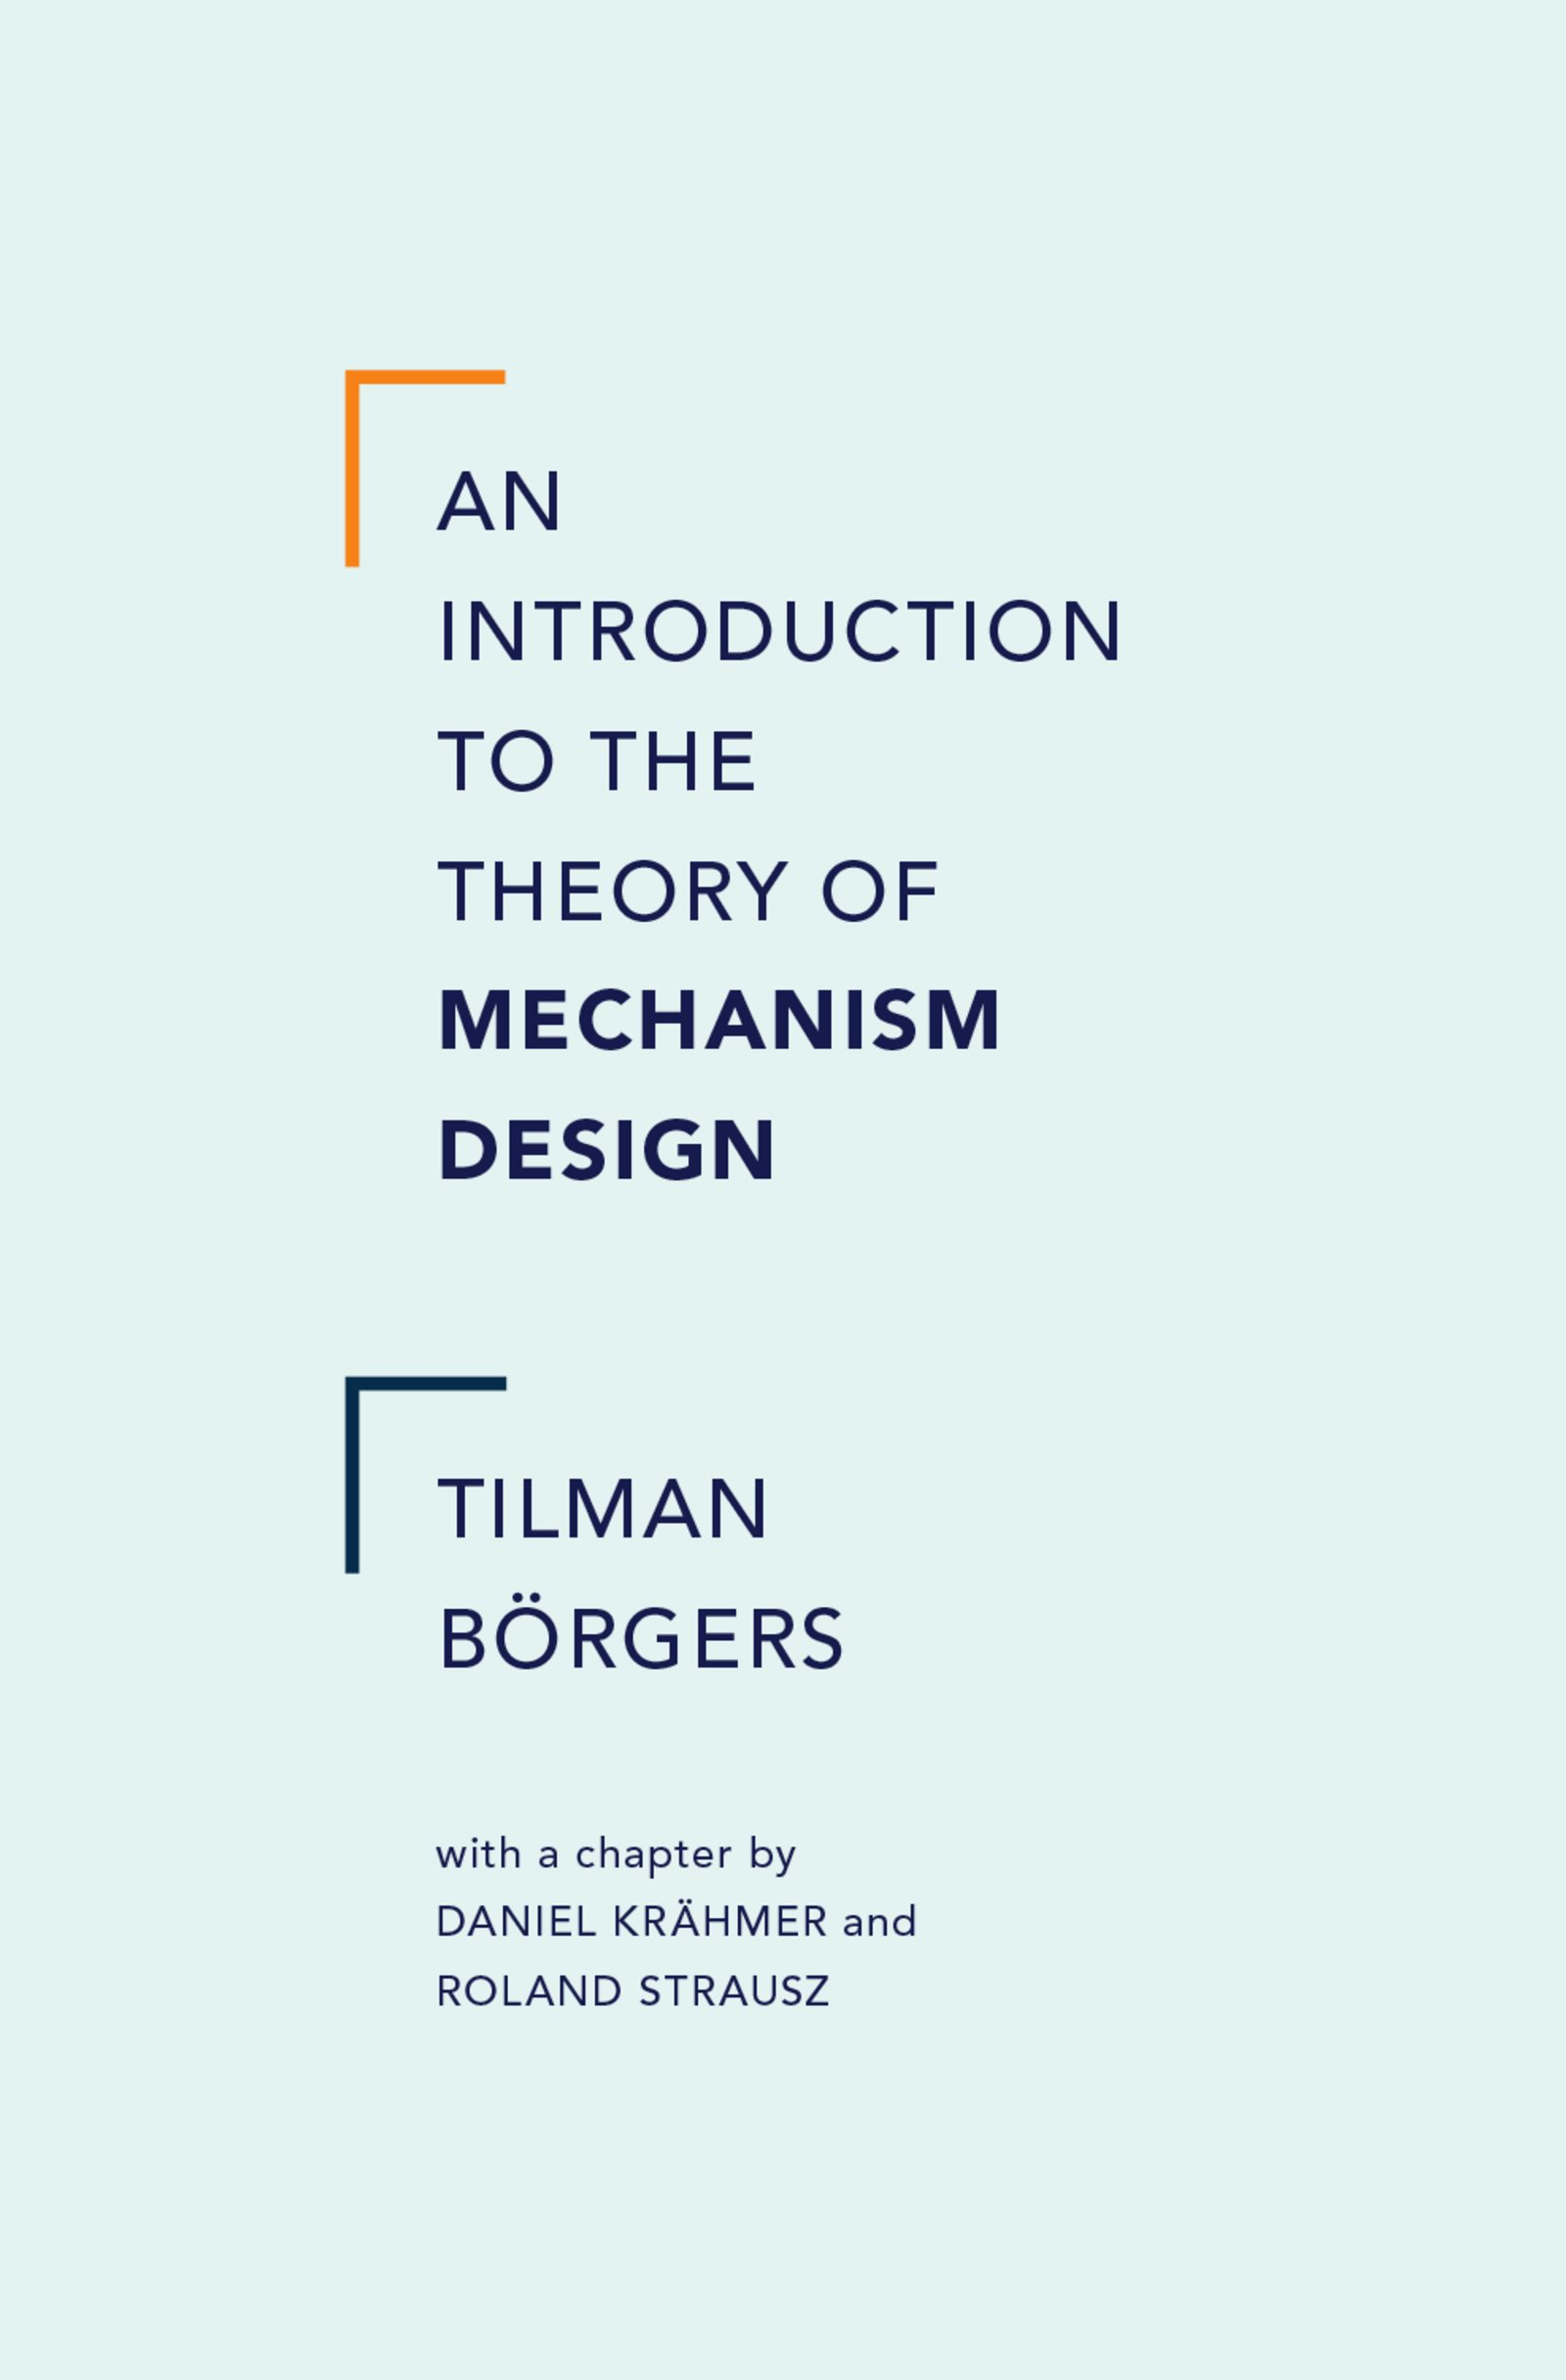 Download Ebook An Introduction to the Theory of Mechanism Design by Tilman Borgers Pdf